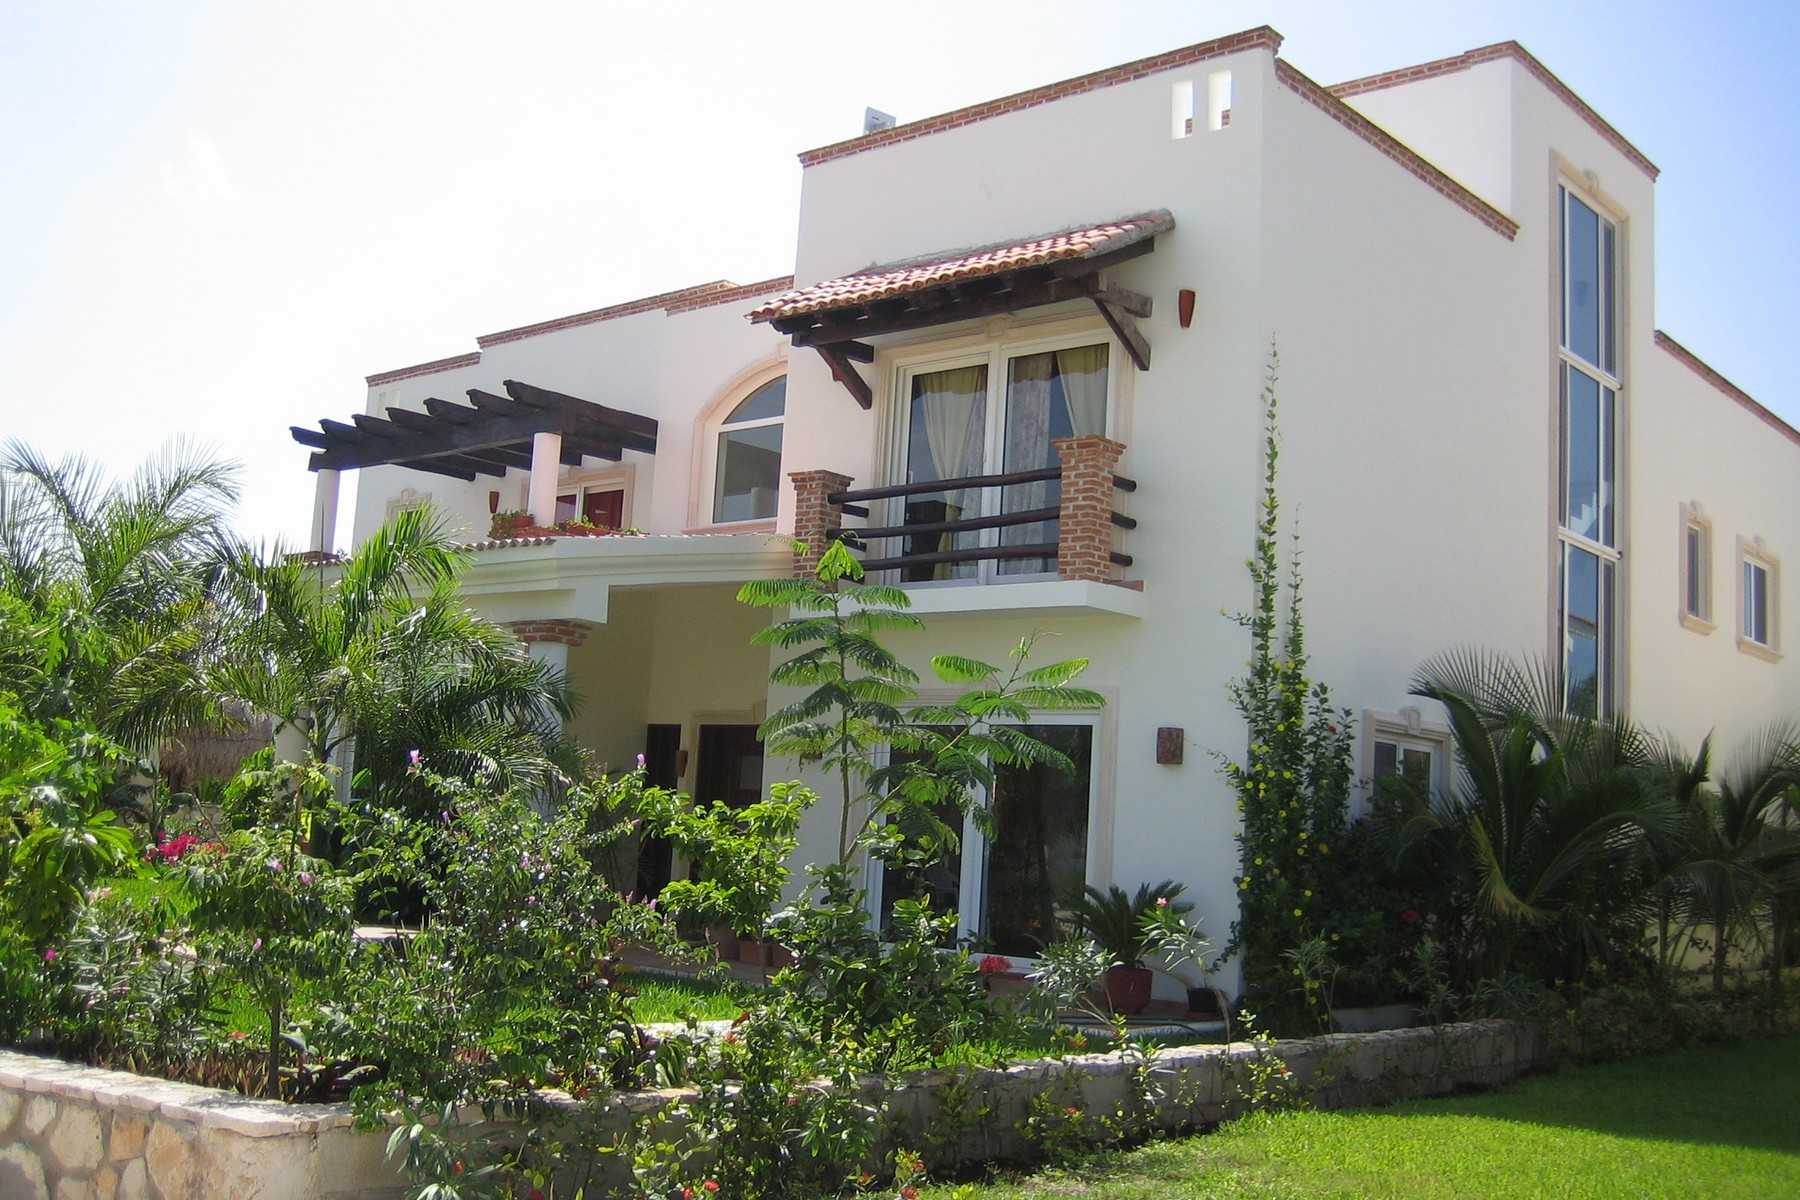 Single Family Home for Sale at CASA ANDALUCIA Playa Del Carmen, 77710 Mexico